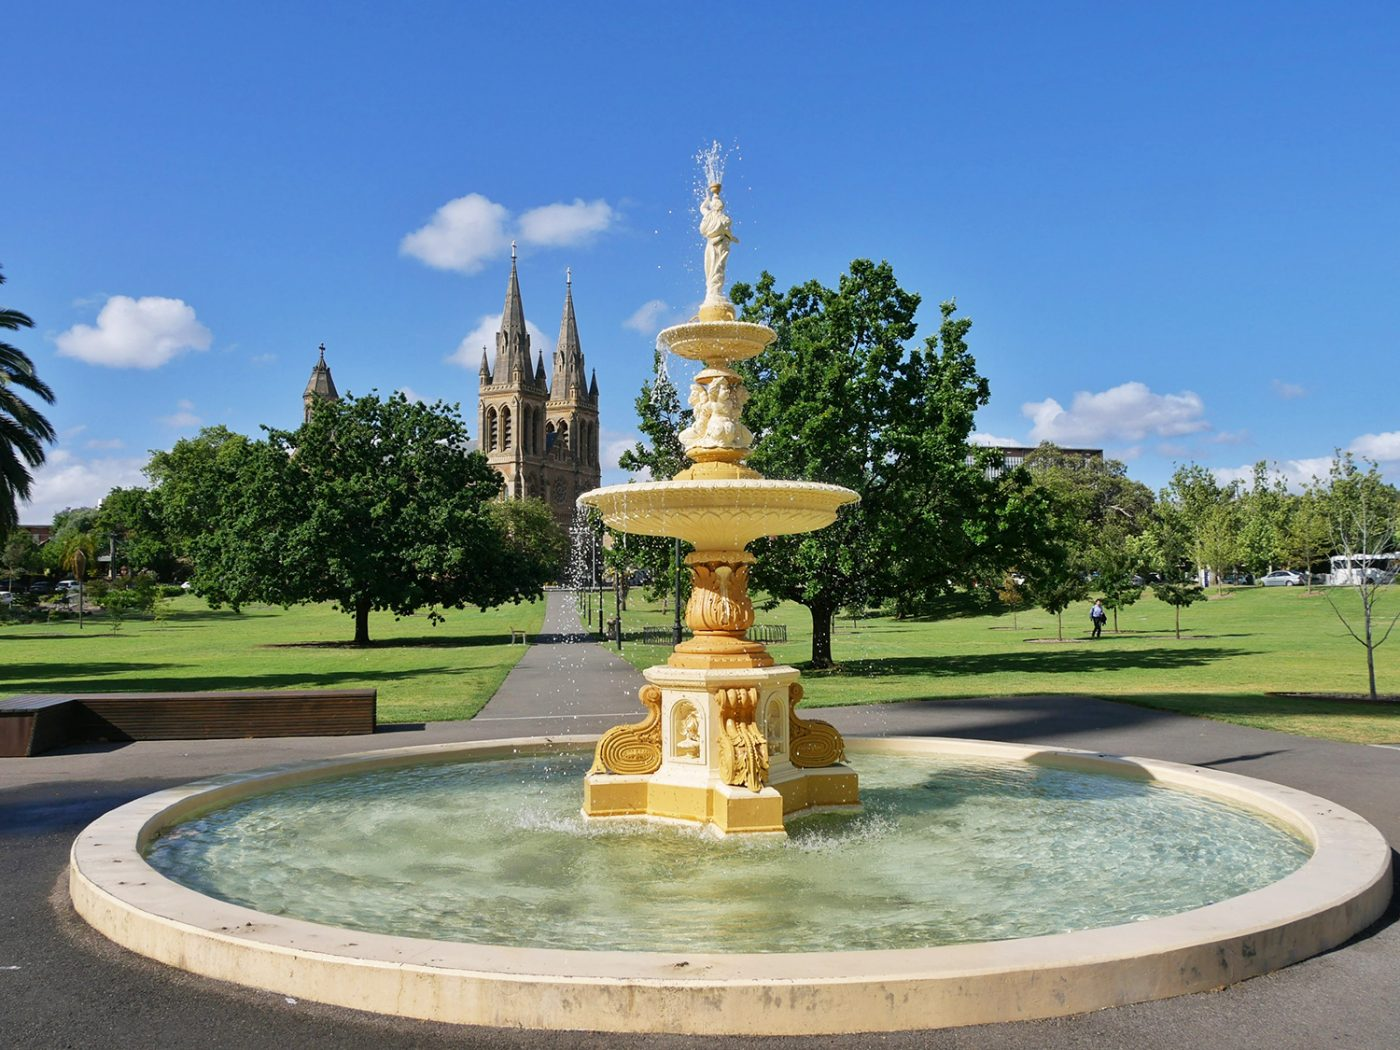 Adelaide is a beautiful city and absolute must see